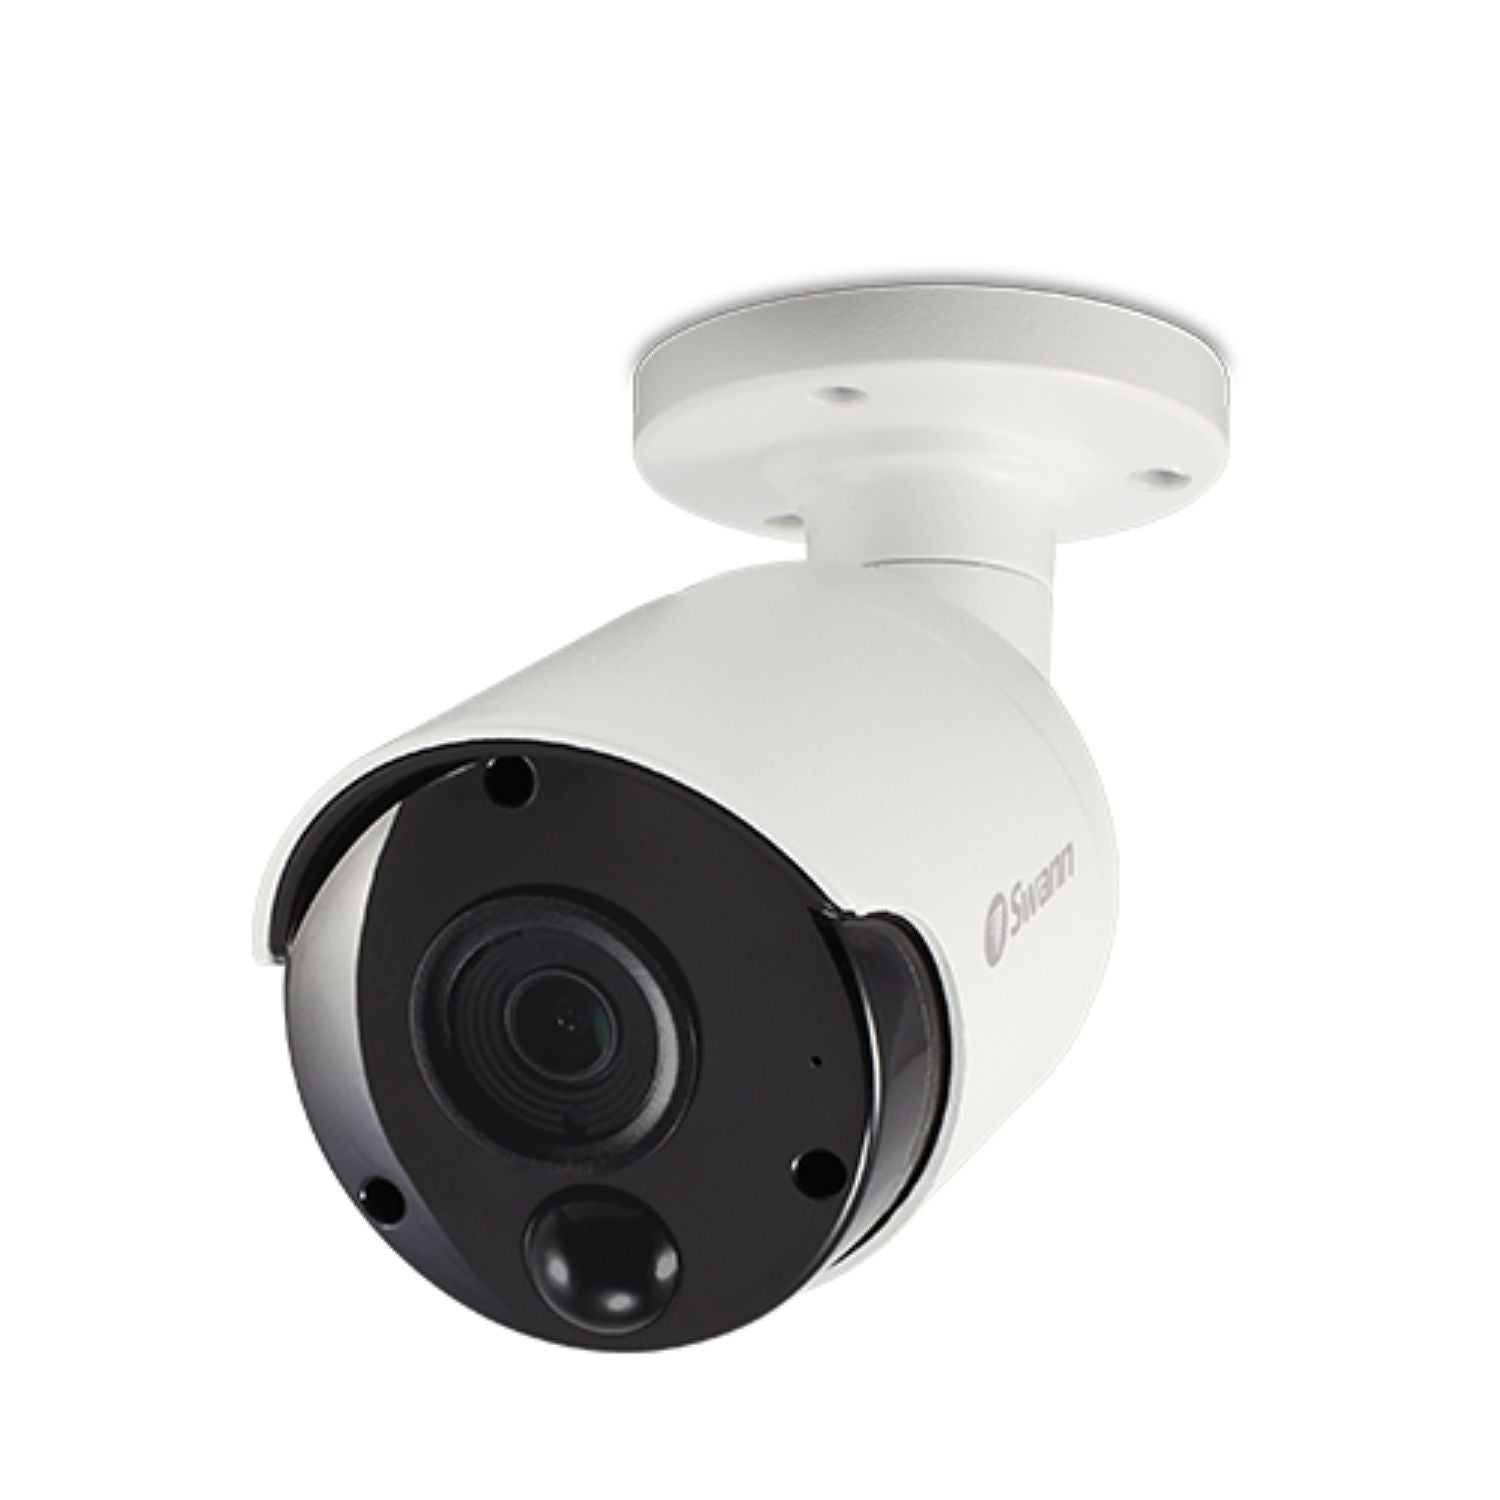 Swann NHD-887MSB Security Camera: 4K Ultra HD, Bullet, Thermal and Face Recognition